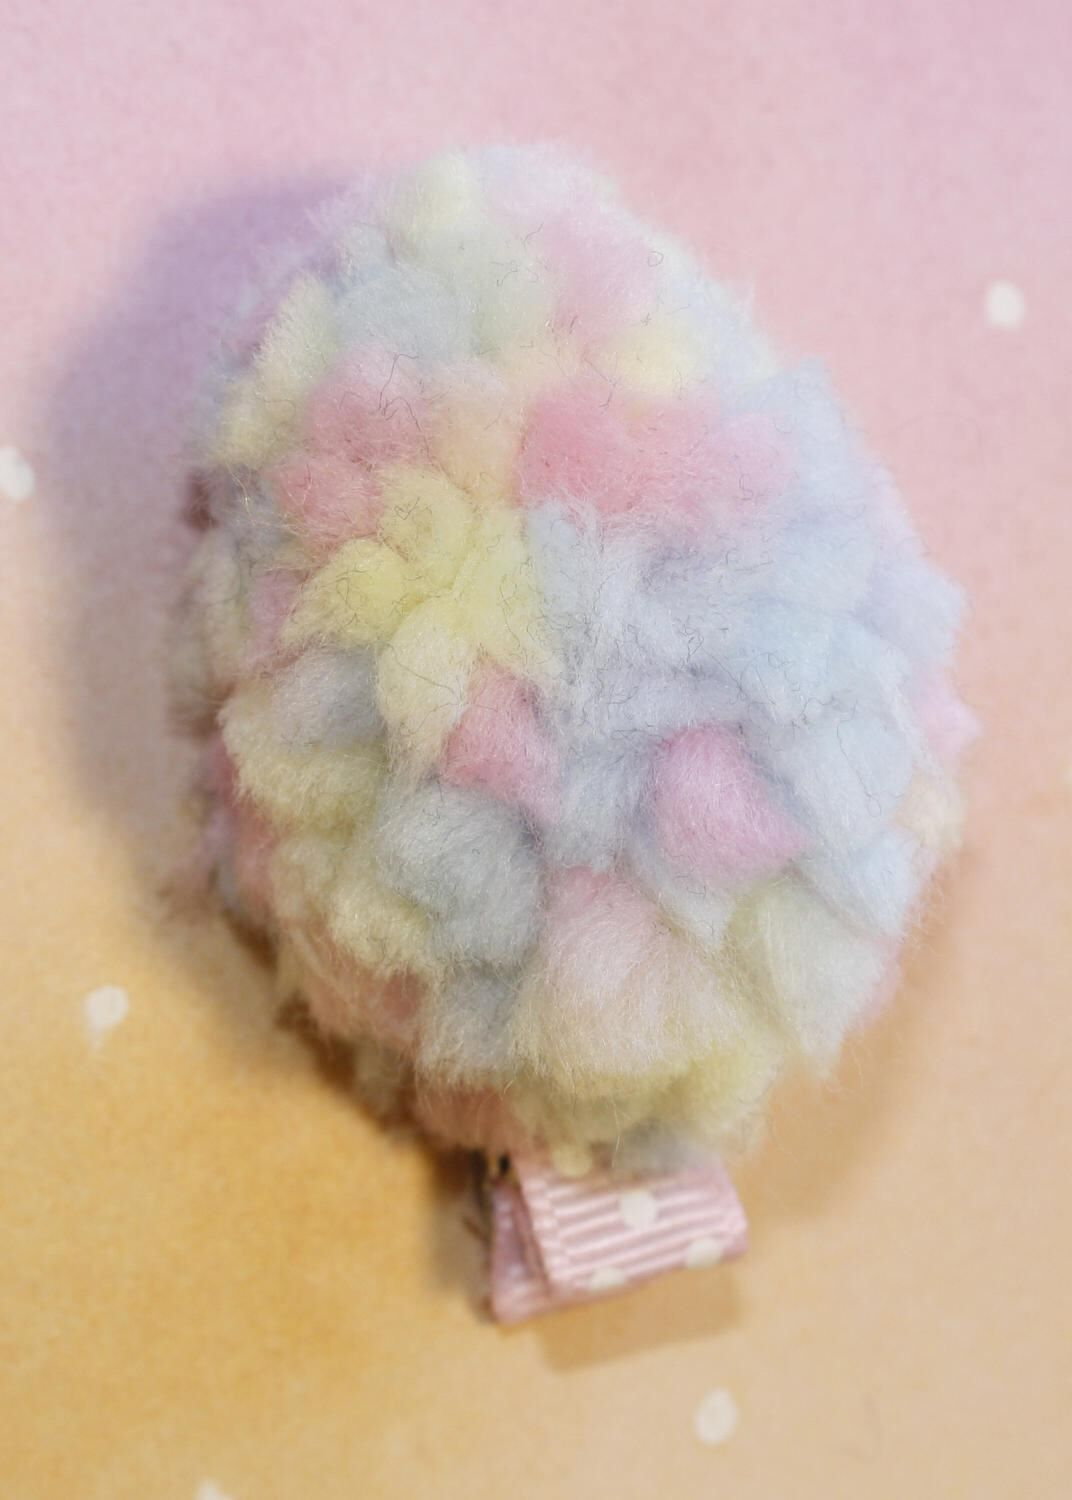 Easter egg hair bow - pom pom hair clip - no slip by ErinsBowrettes on Etsy https://www.etsy.com/listing/503664144/easter-egg-hair-bow-pom-pom-hair-clip-no